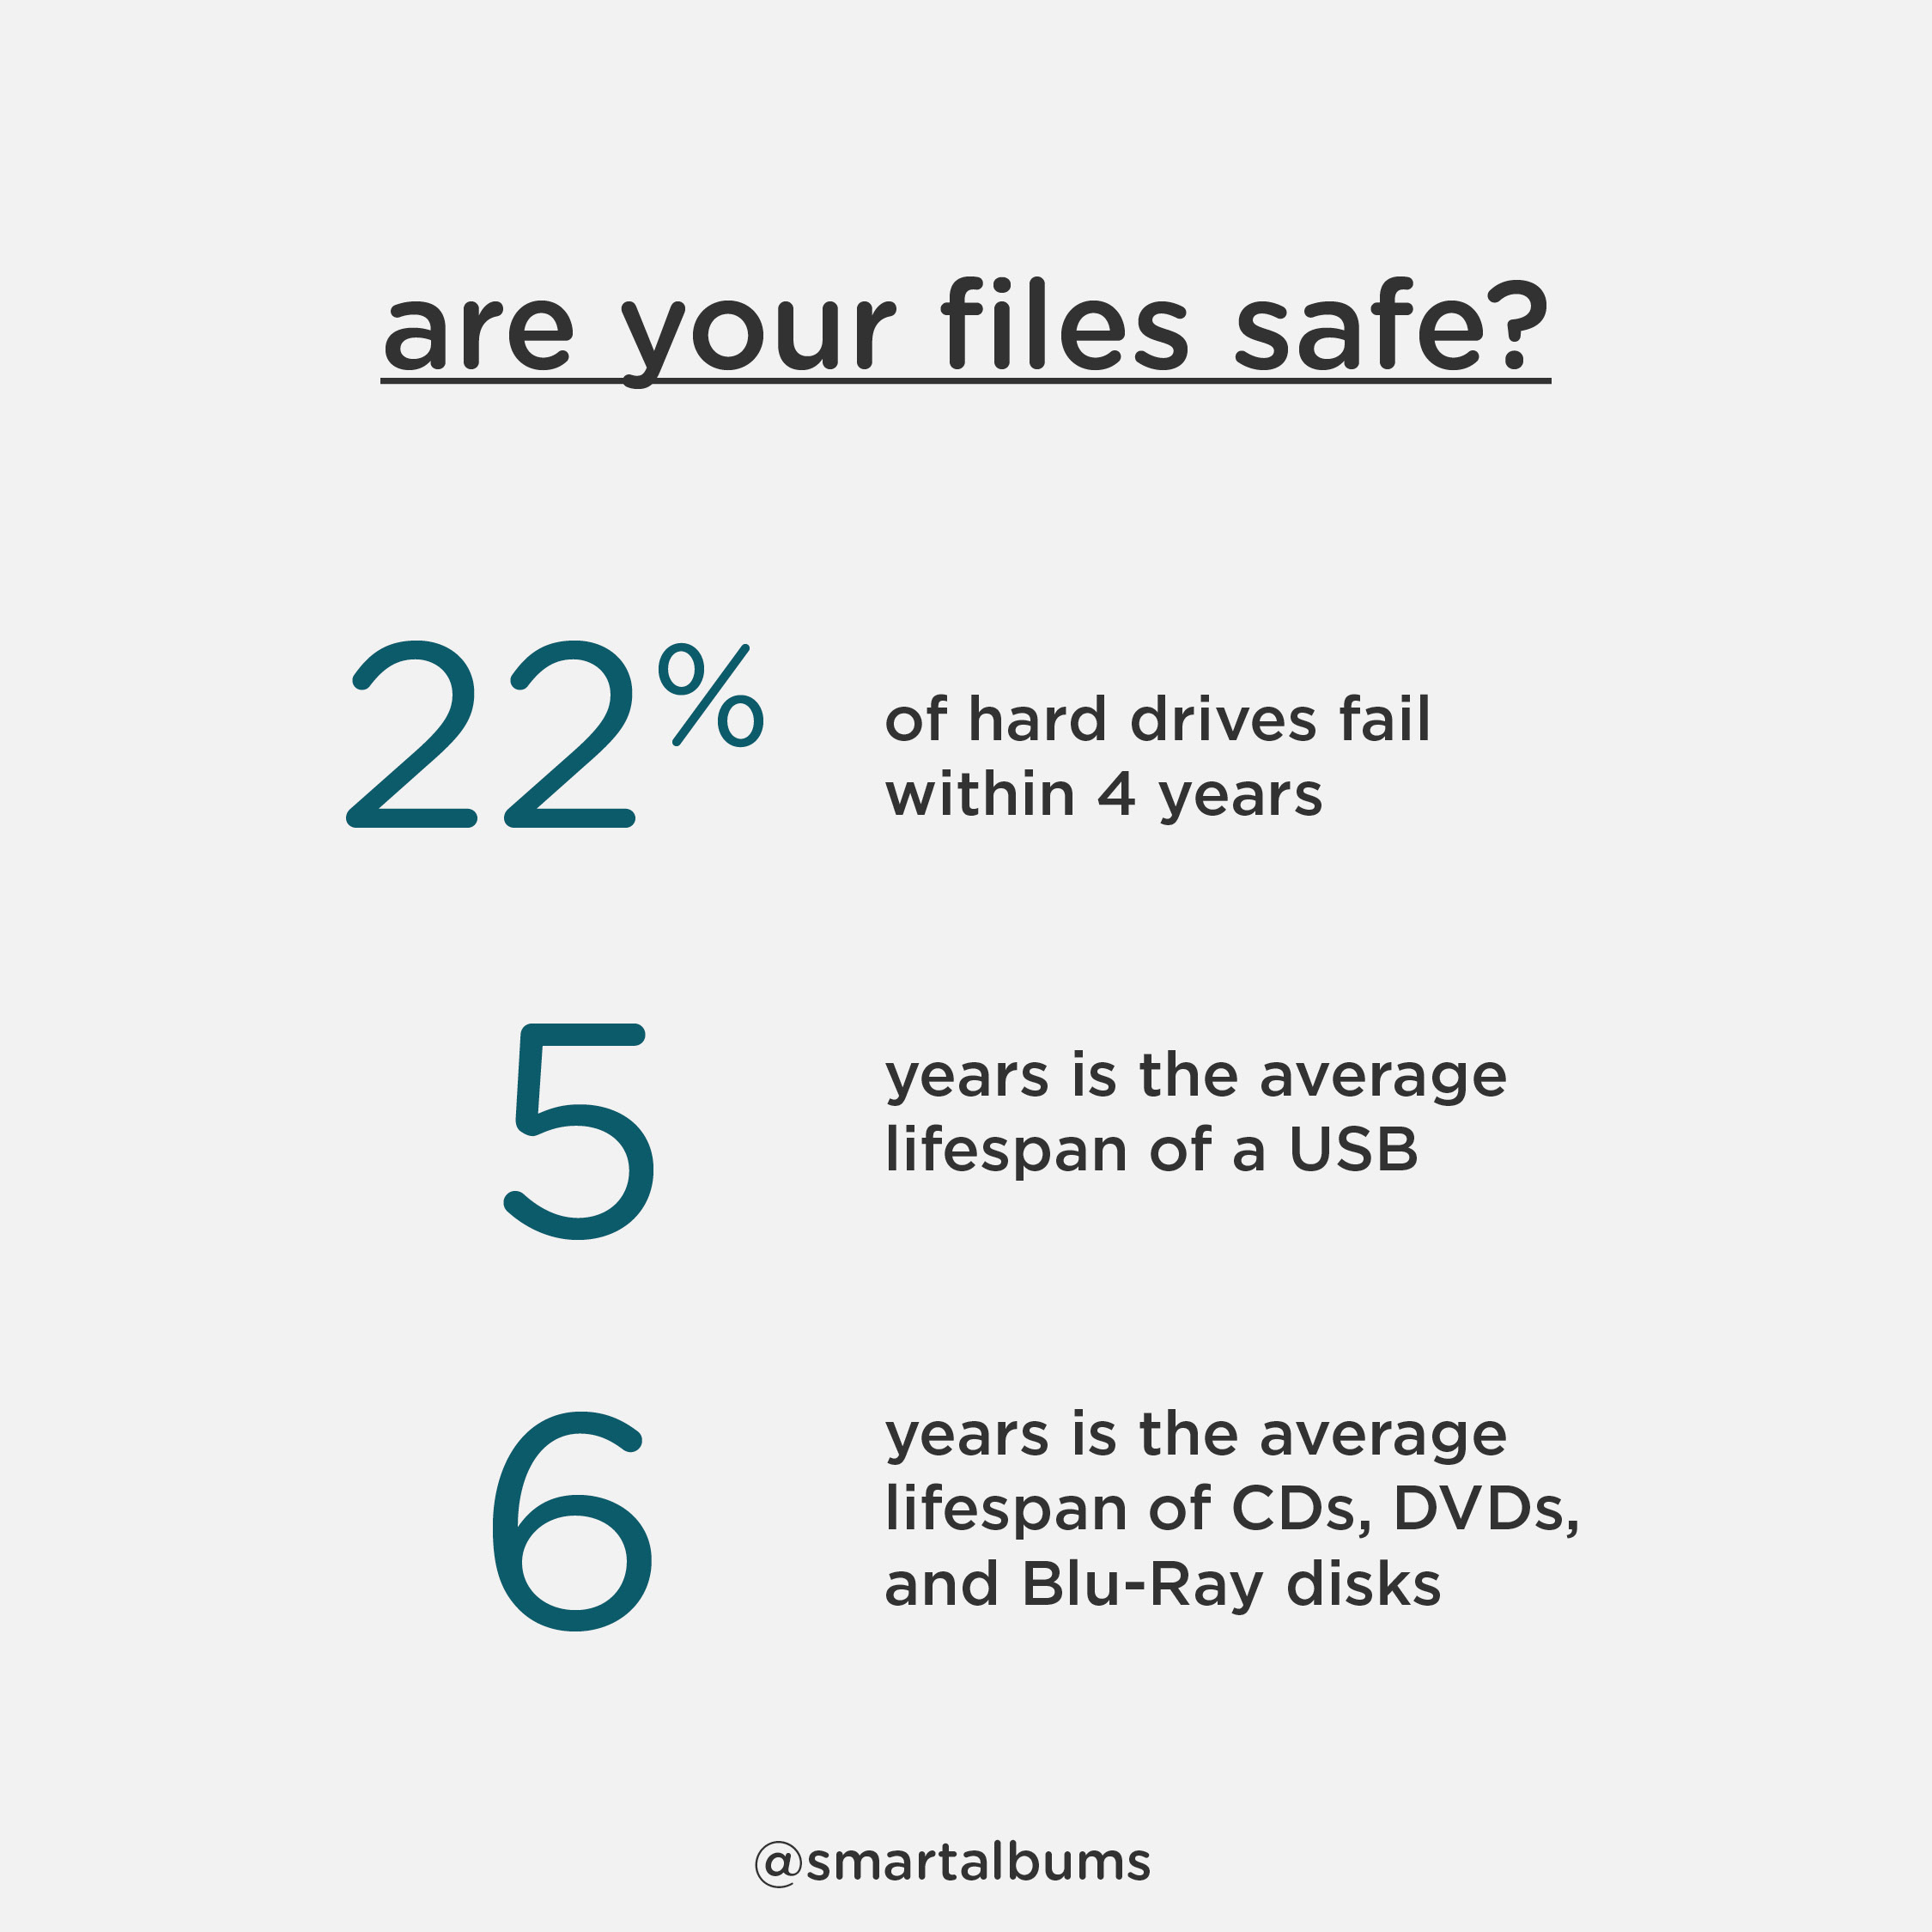 Are your files safe? Media failure rates for USBs, Hard drives, and disks